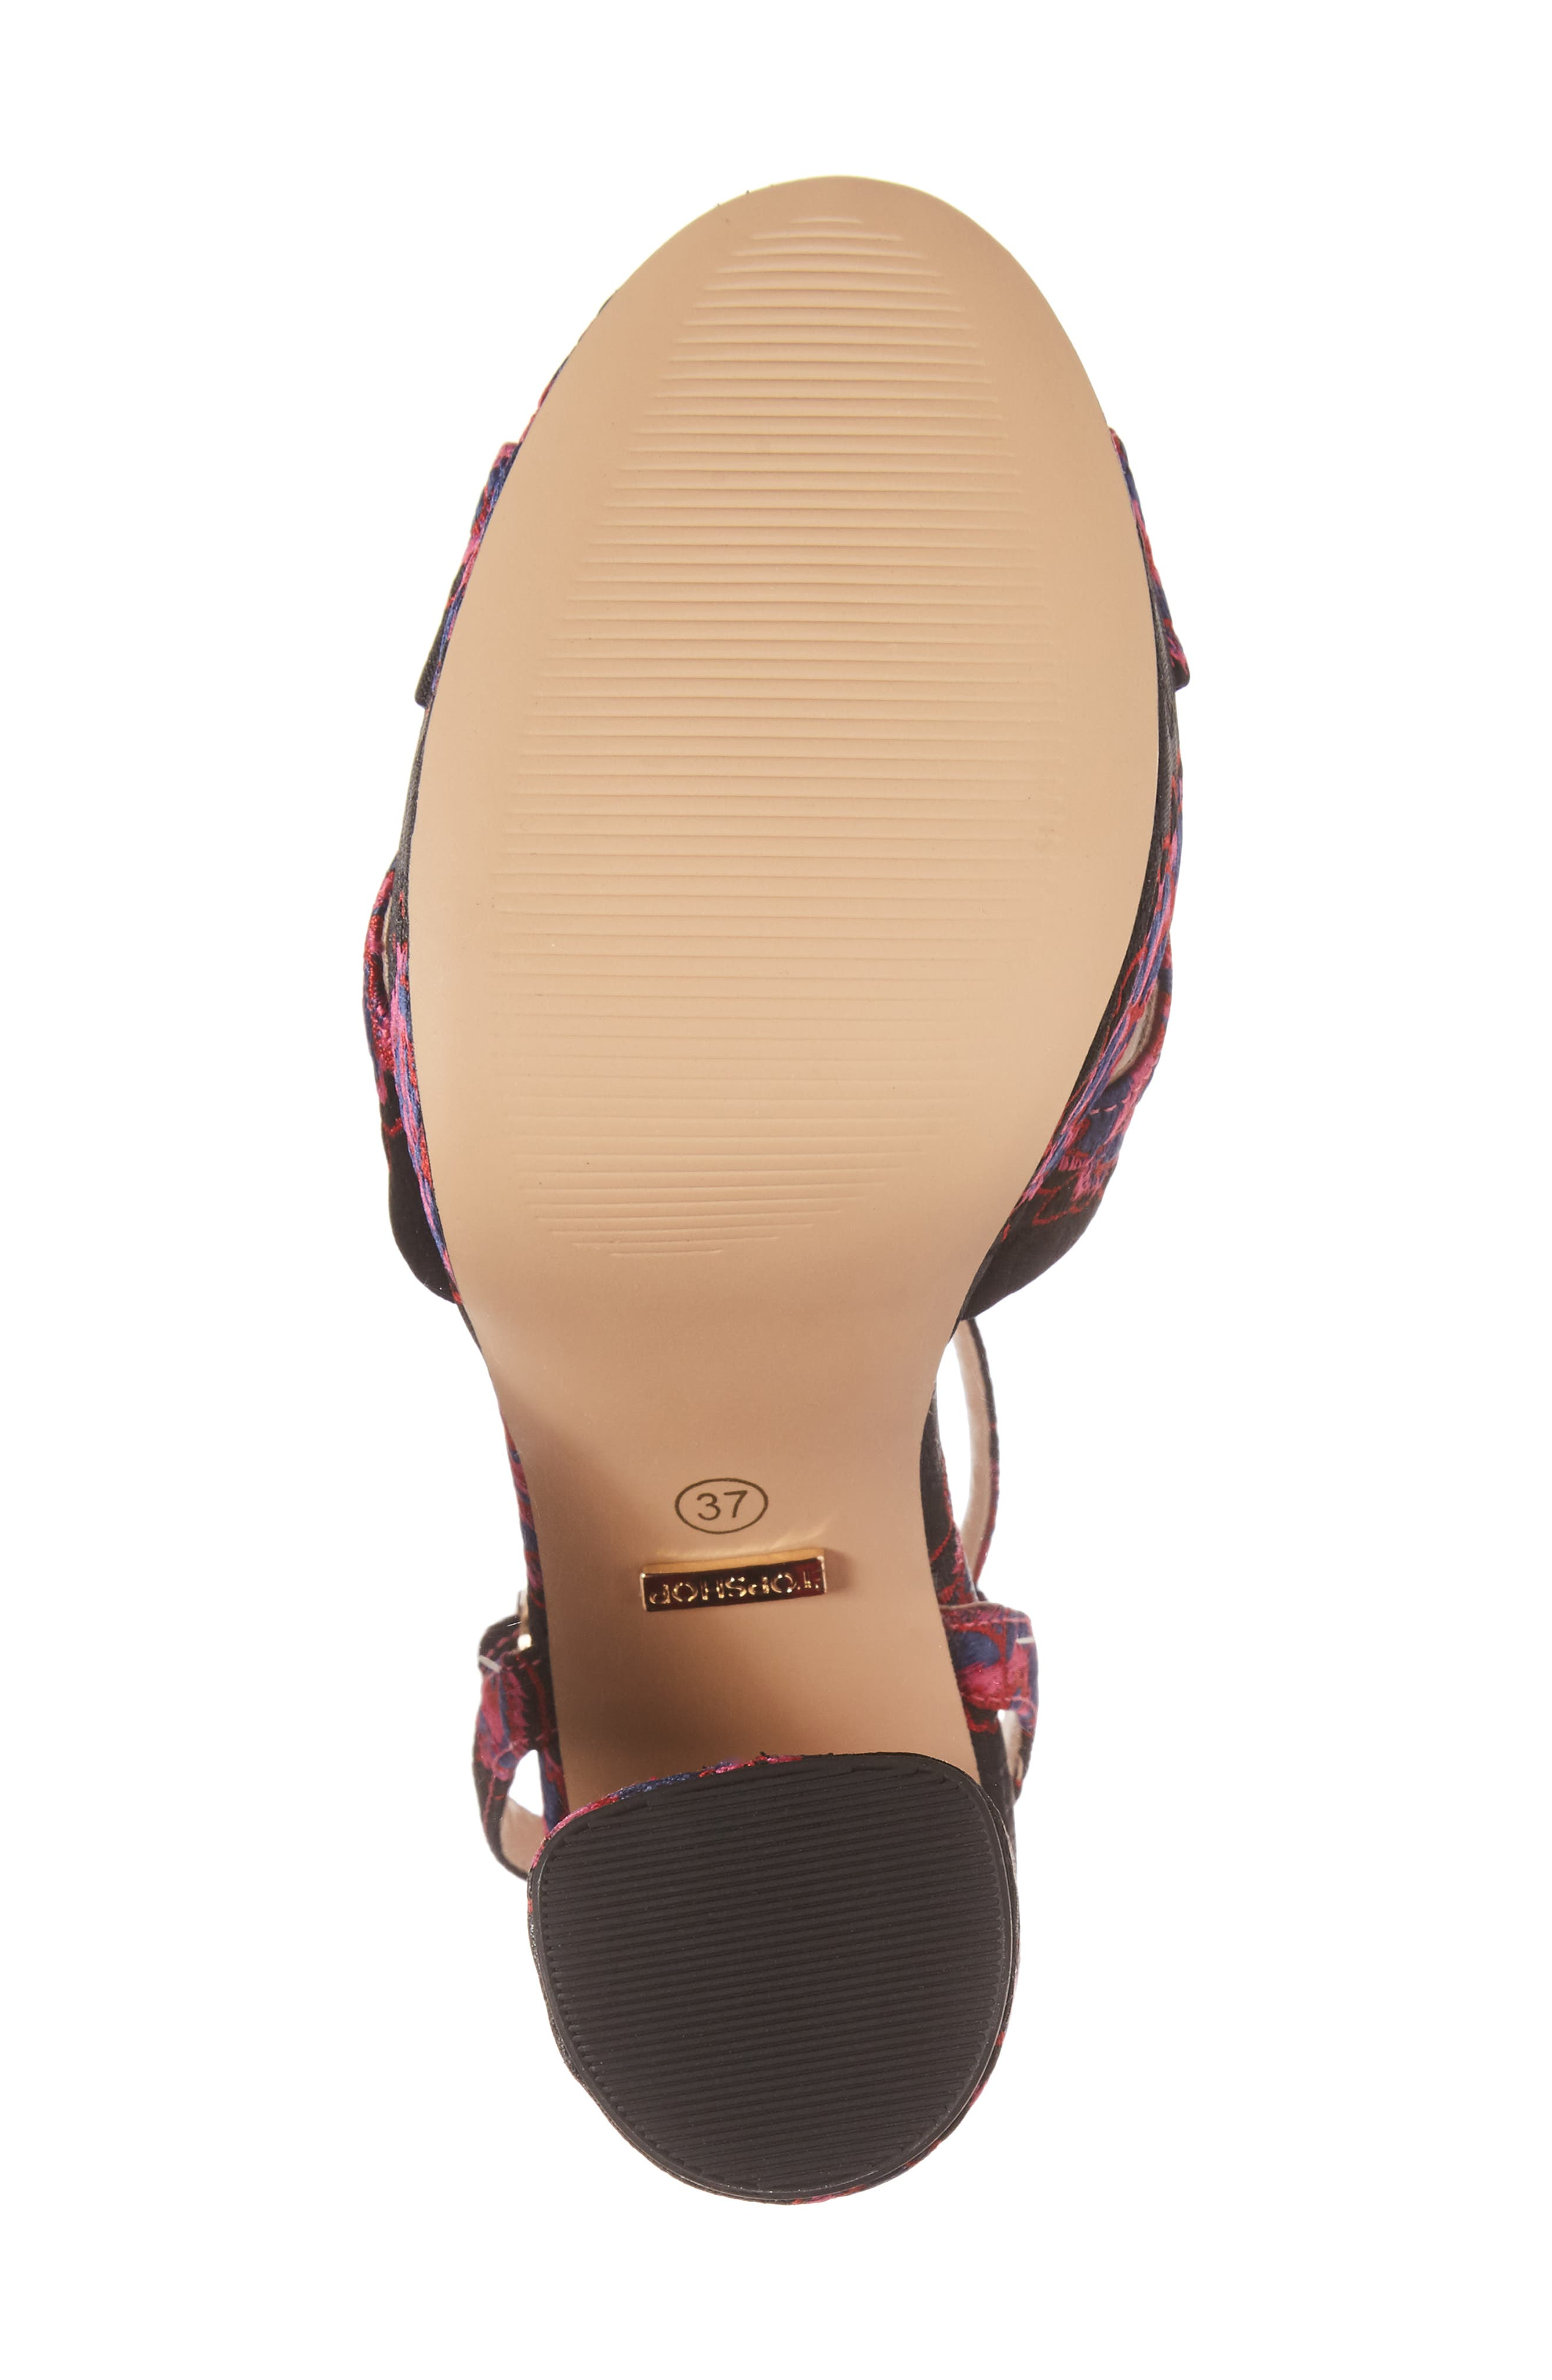 Lollie Embroidered Sandals,                             Alternate thumbnail 6, color,                             001